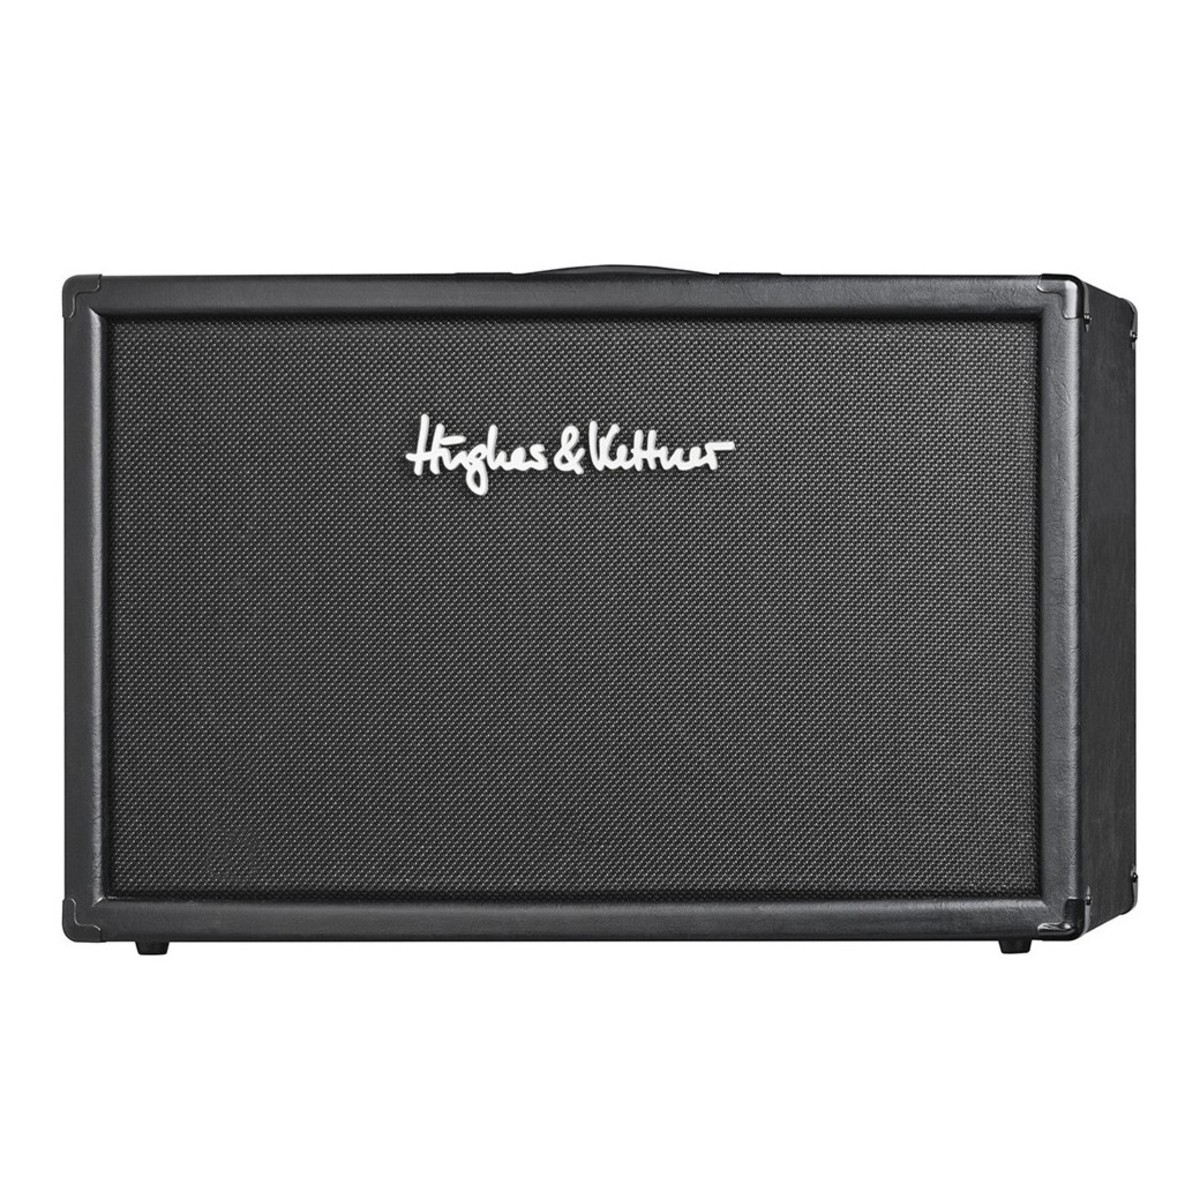 Click to view product details and reviews for Hughes Kettner Tm 212 Cabinet 2x12.